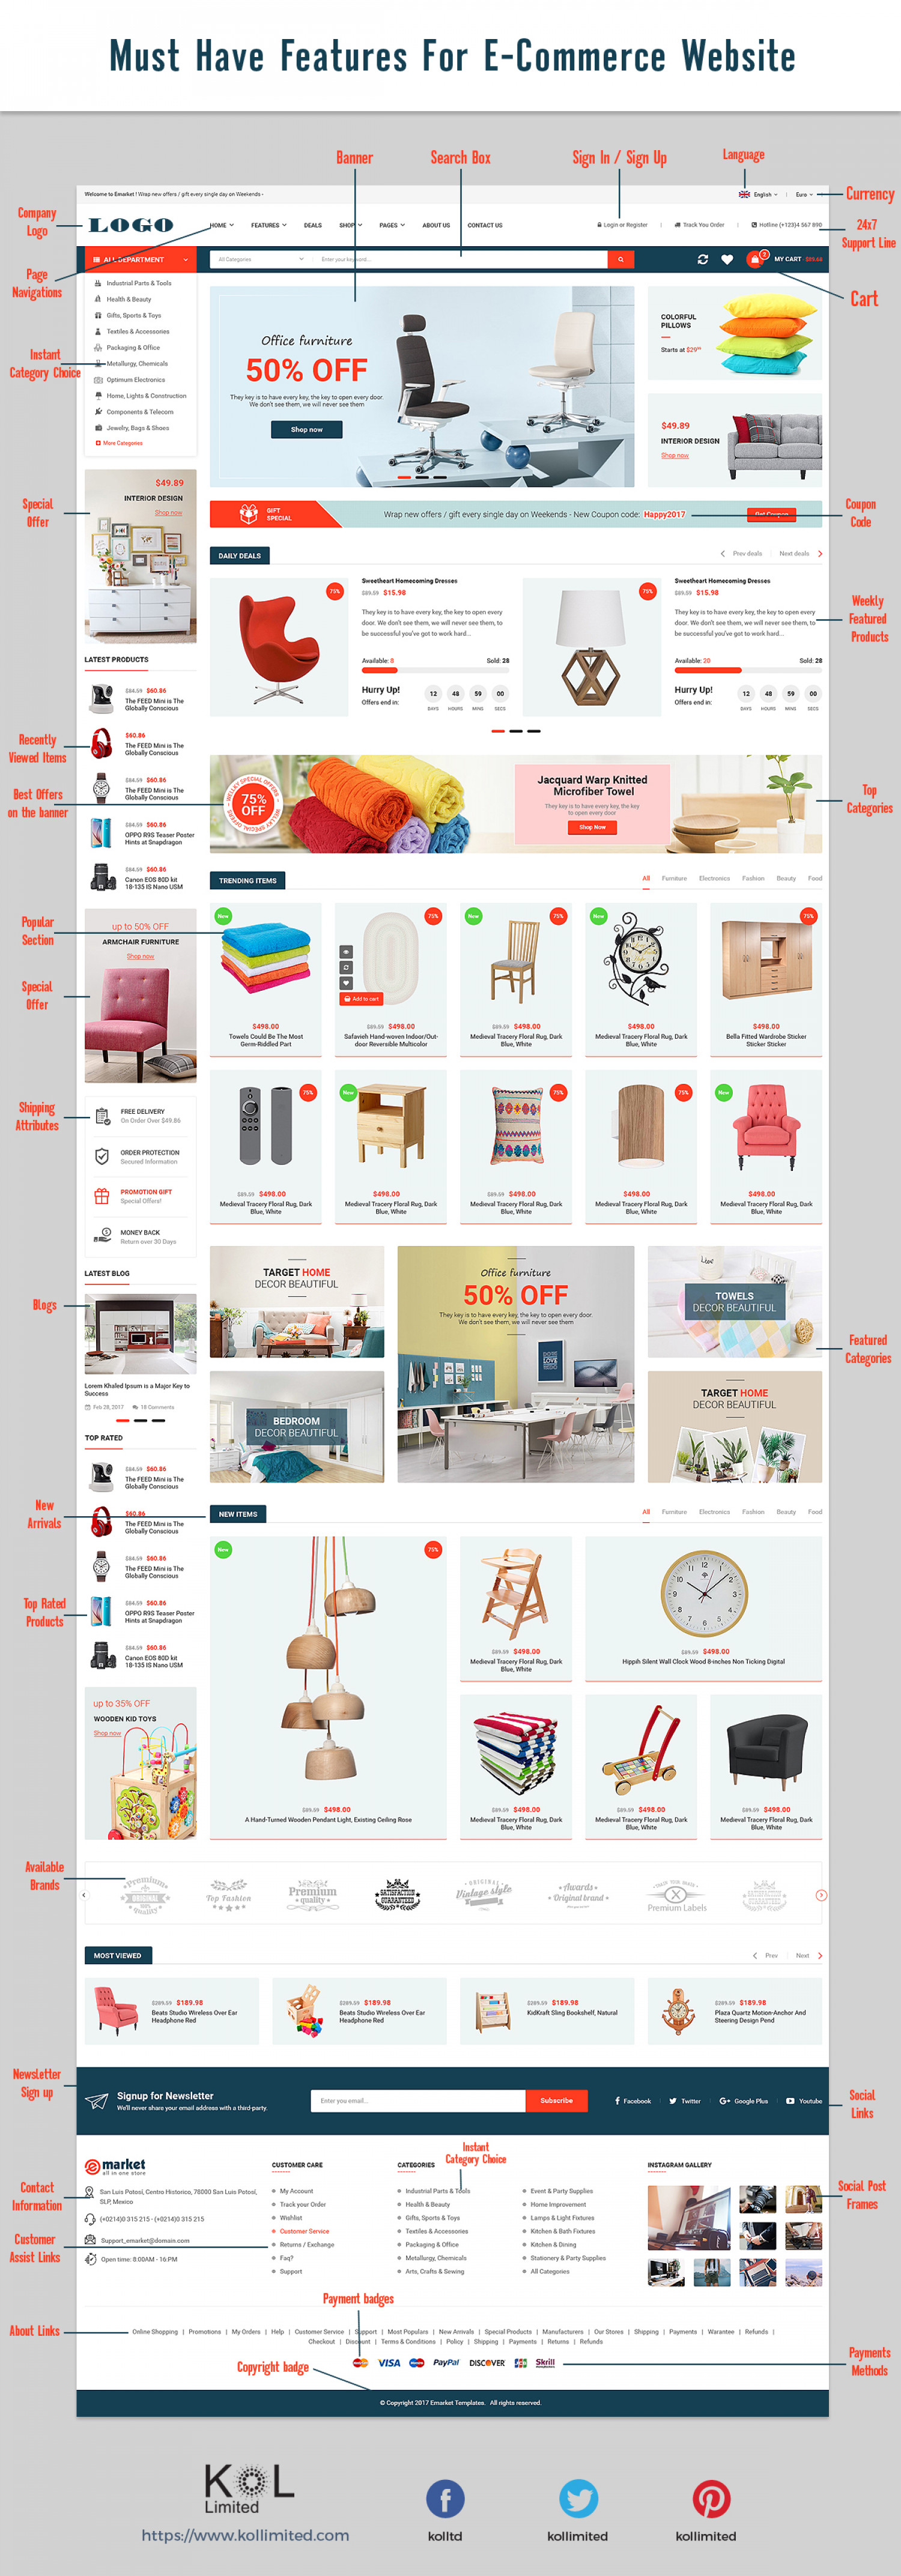 Must Have Features For E-commerce Website Infographic